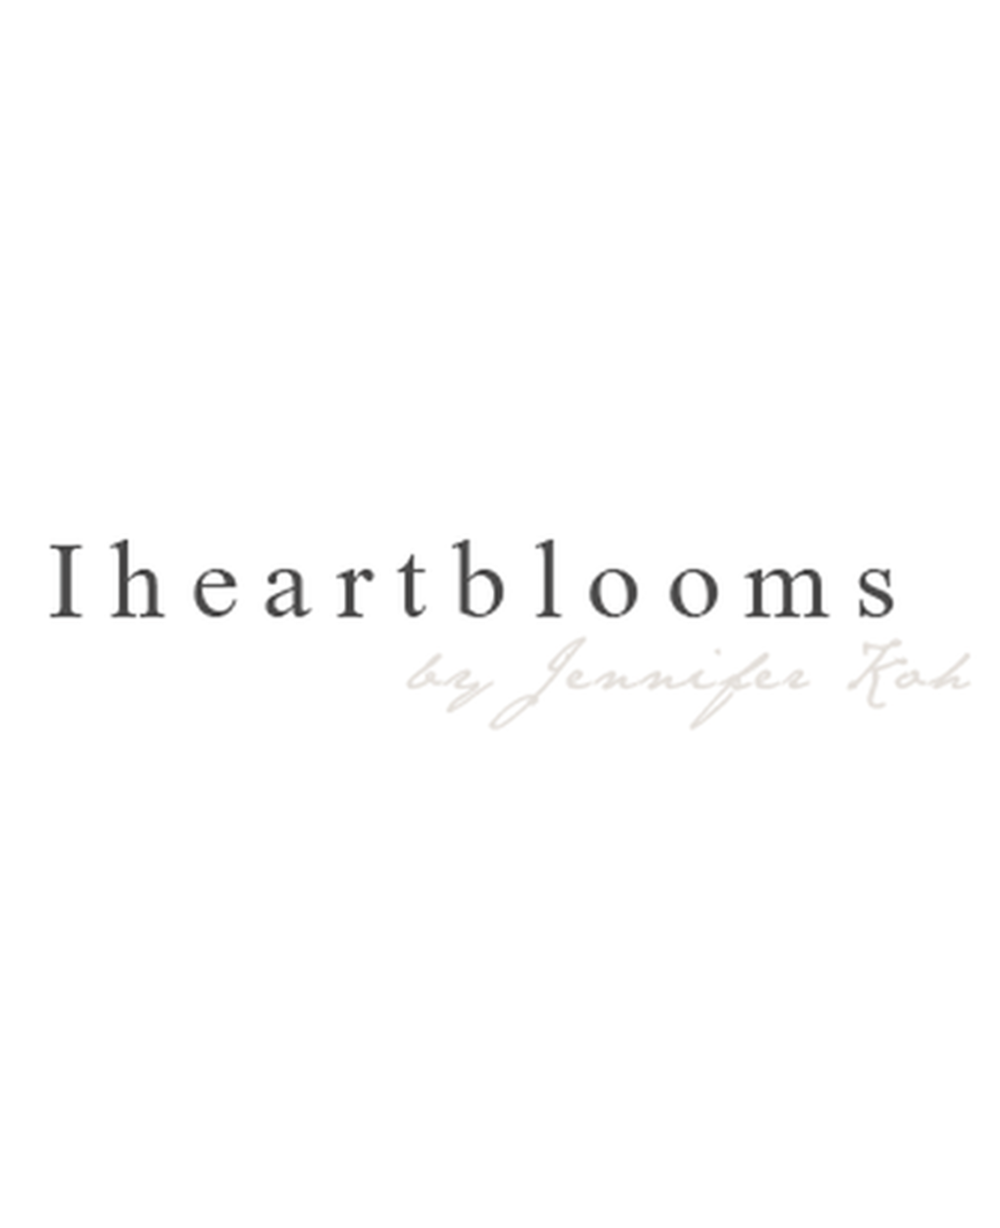 IHEARTBLOOMS.png